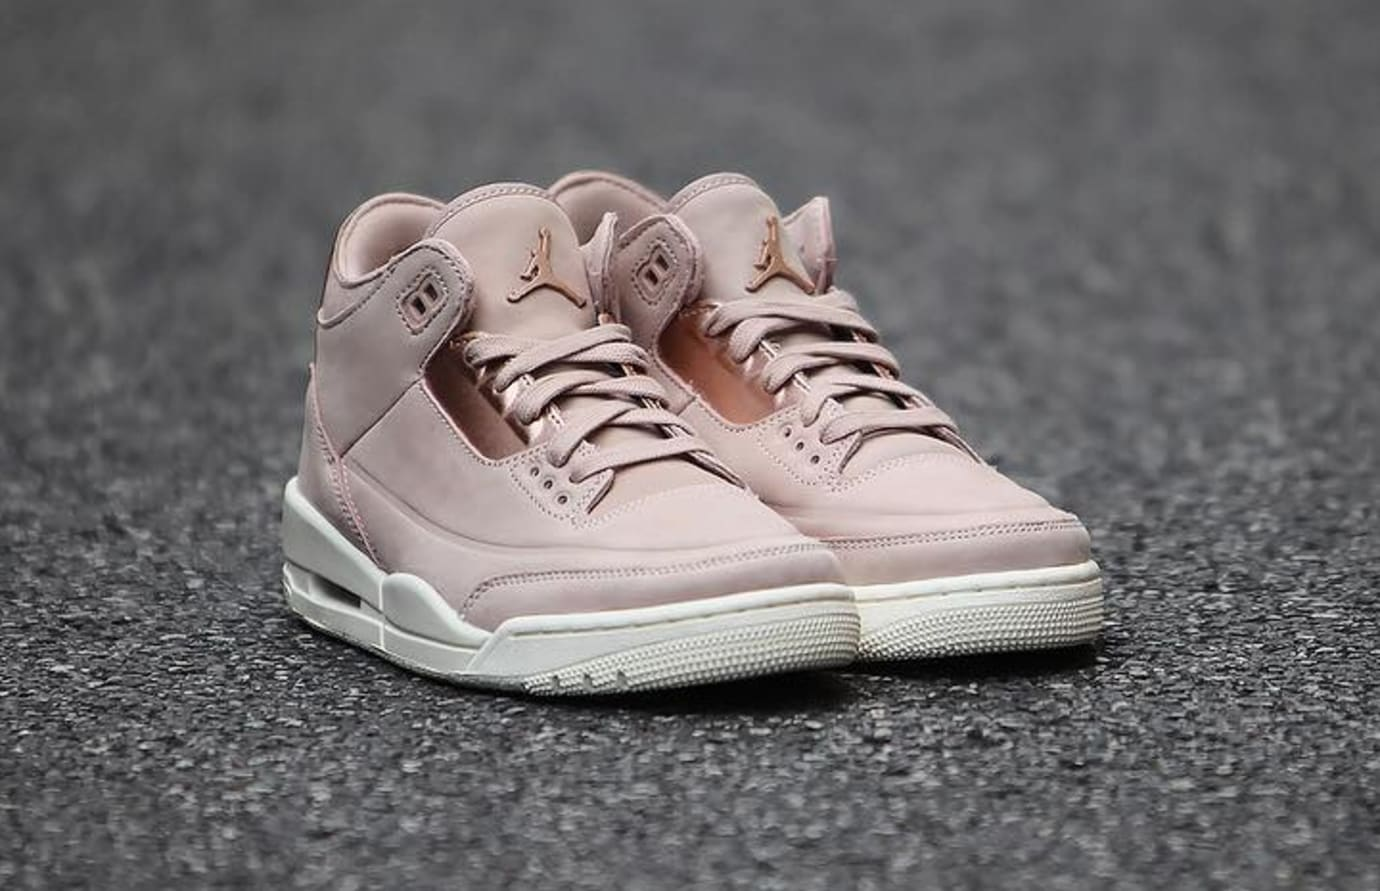 8f4c191b0256 Image via Nike Air Jordan 3 III Women s Particle Beige Release Date  AH7859-205 Right Toe